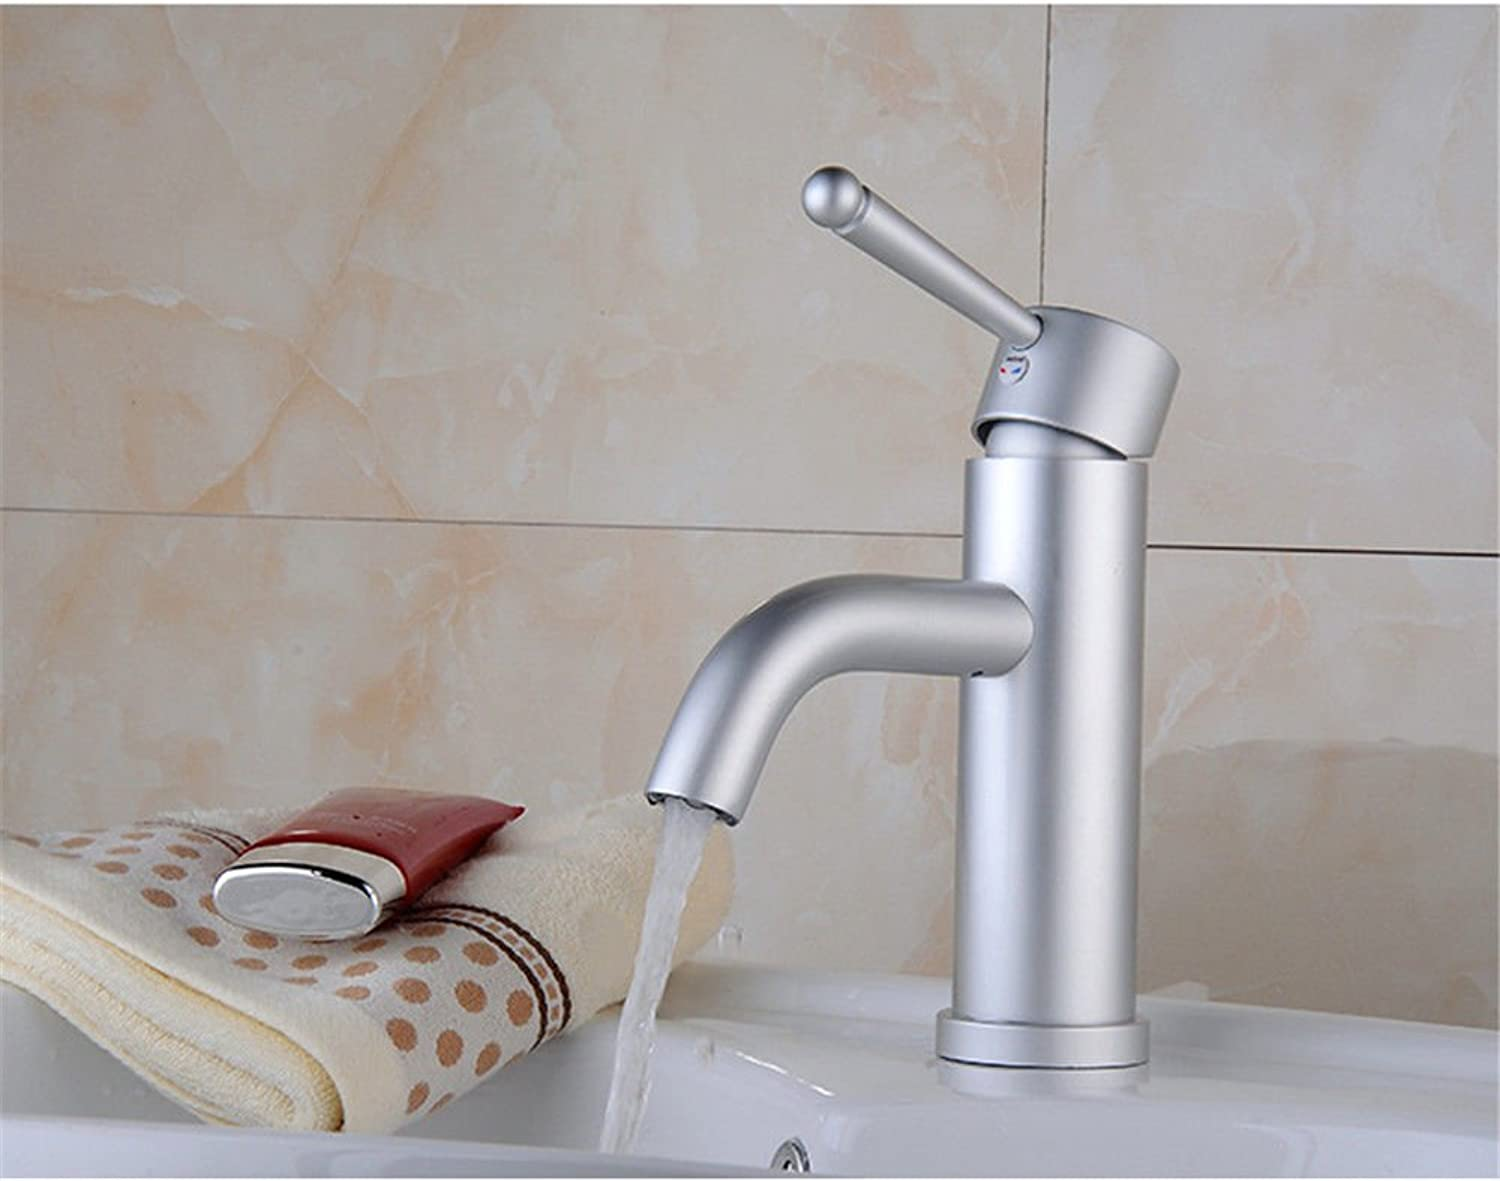 ETERNAL QUALITY Bathroom Sink Basin Tap Brass Mixer Tap Washroom Mixer Faucet The space aluminum cold water faucet basin mixer basin faucet basin mixer console Kitchen Si